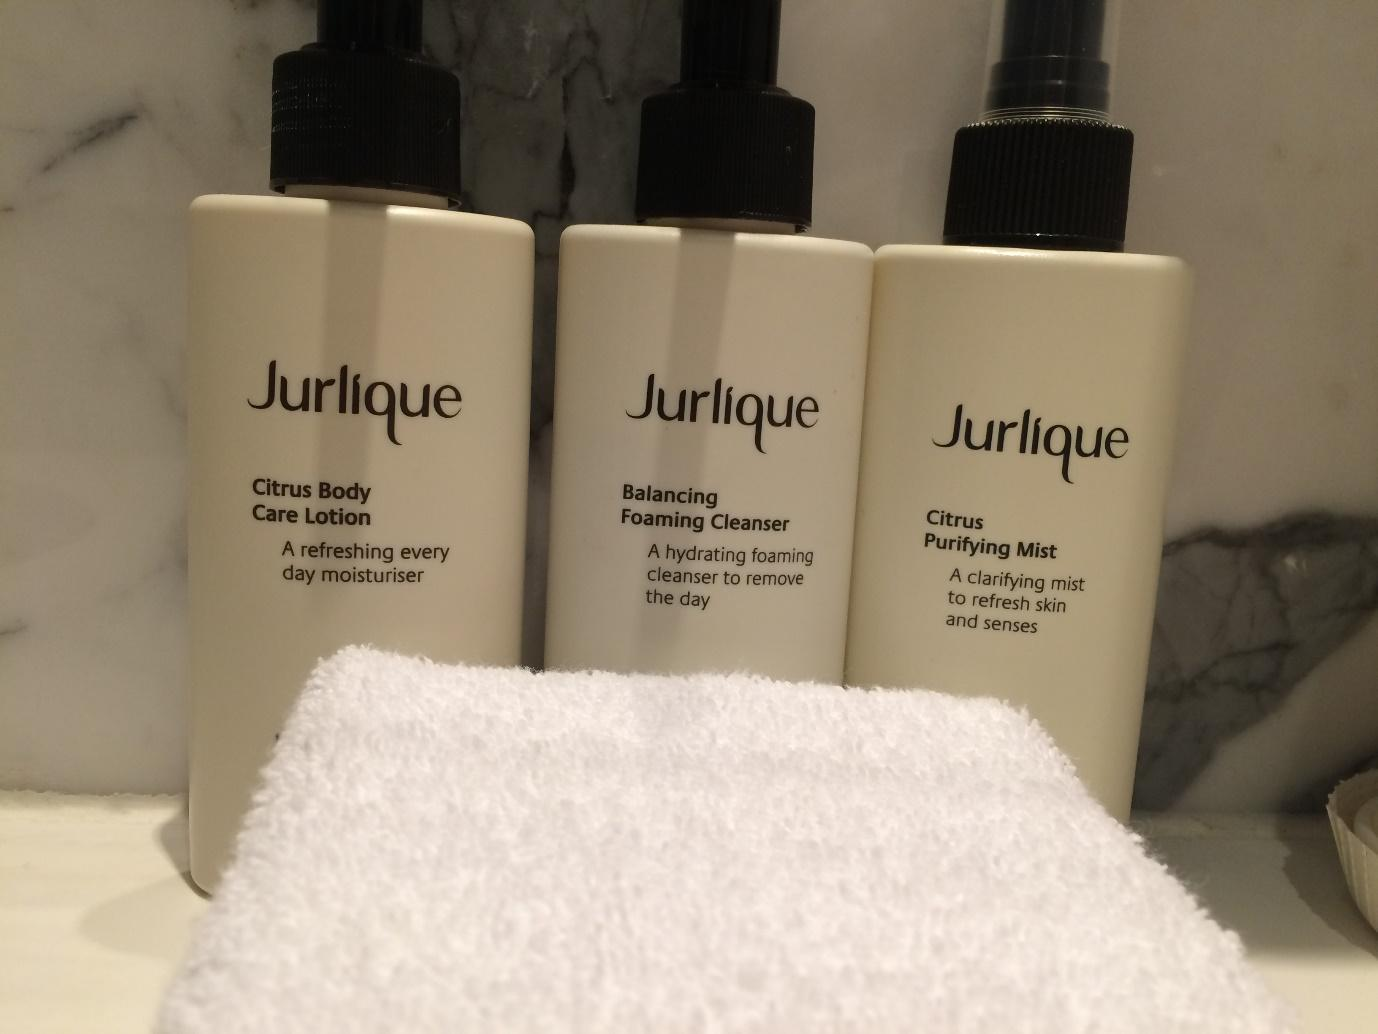 Cathay Pacific The Bridge Jurlique toiletries